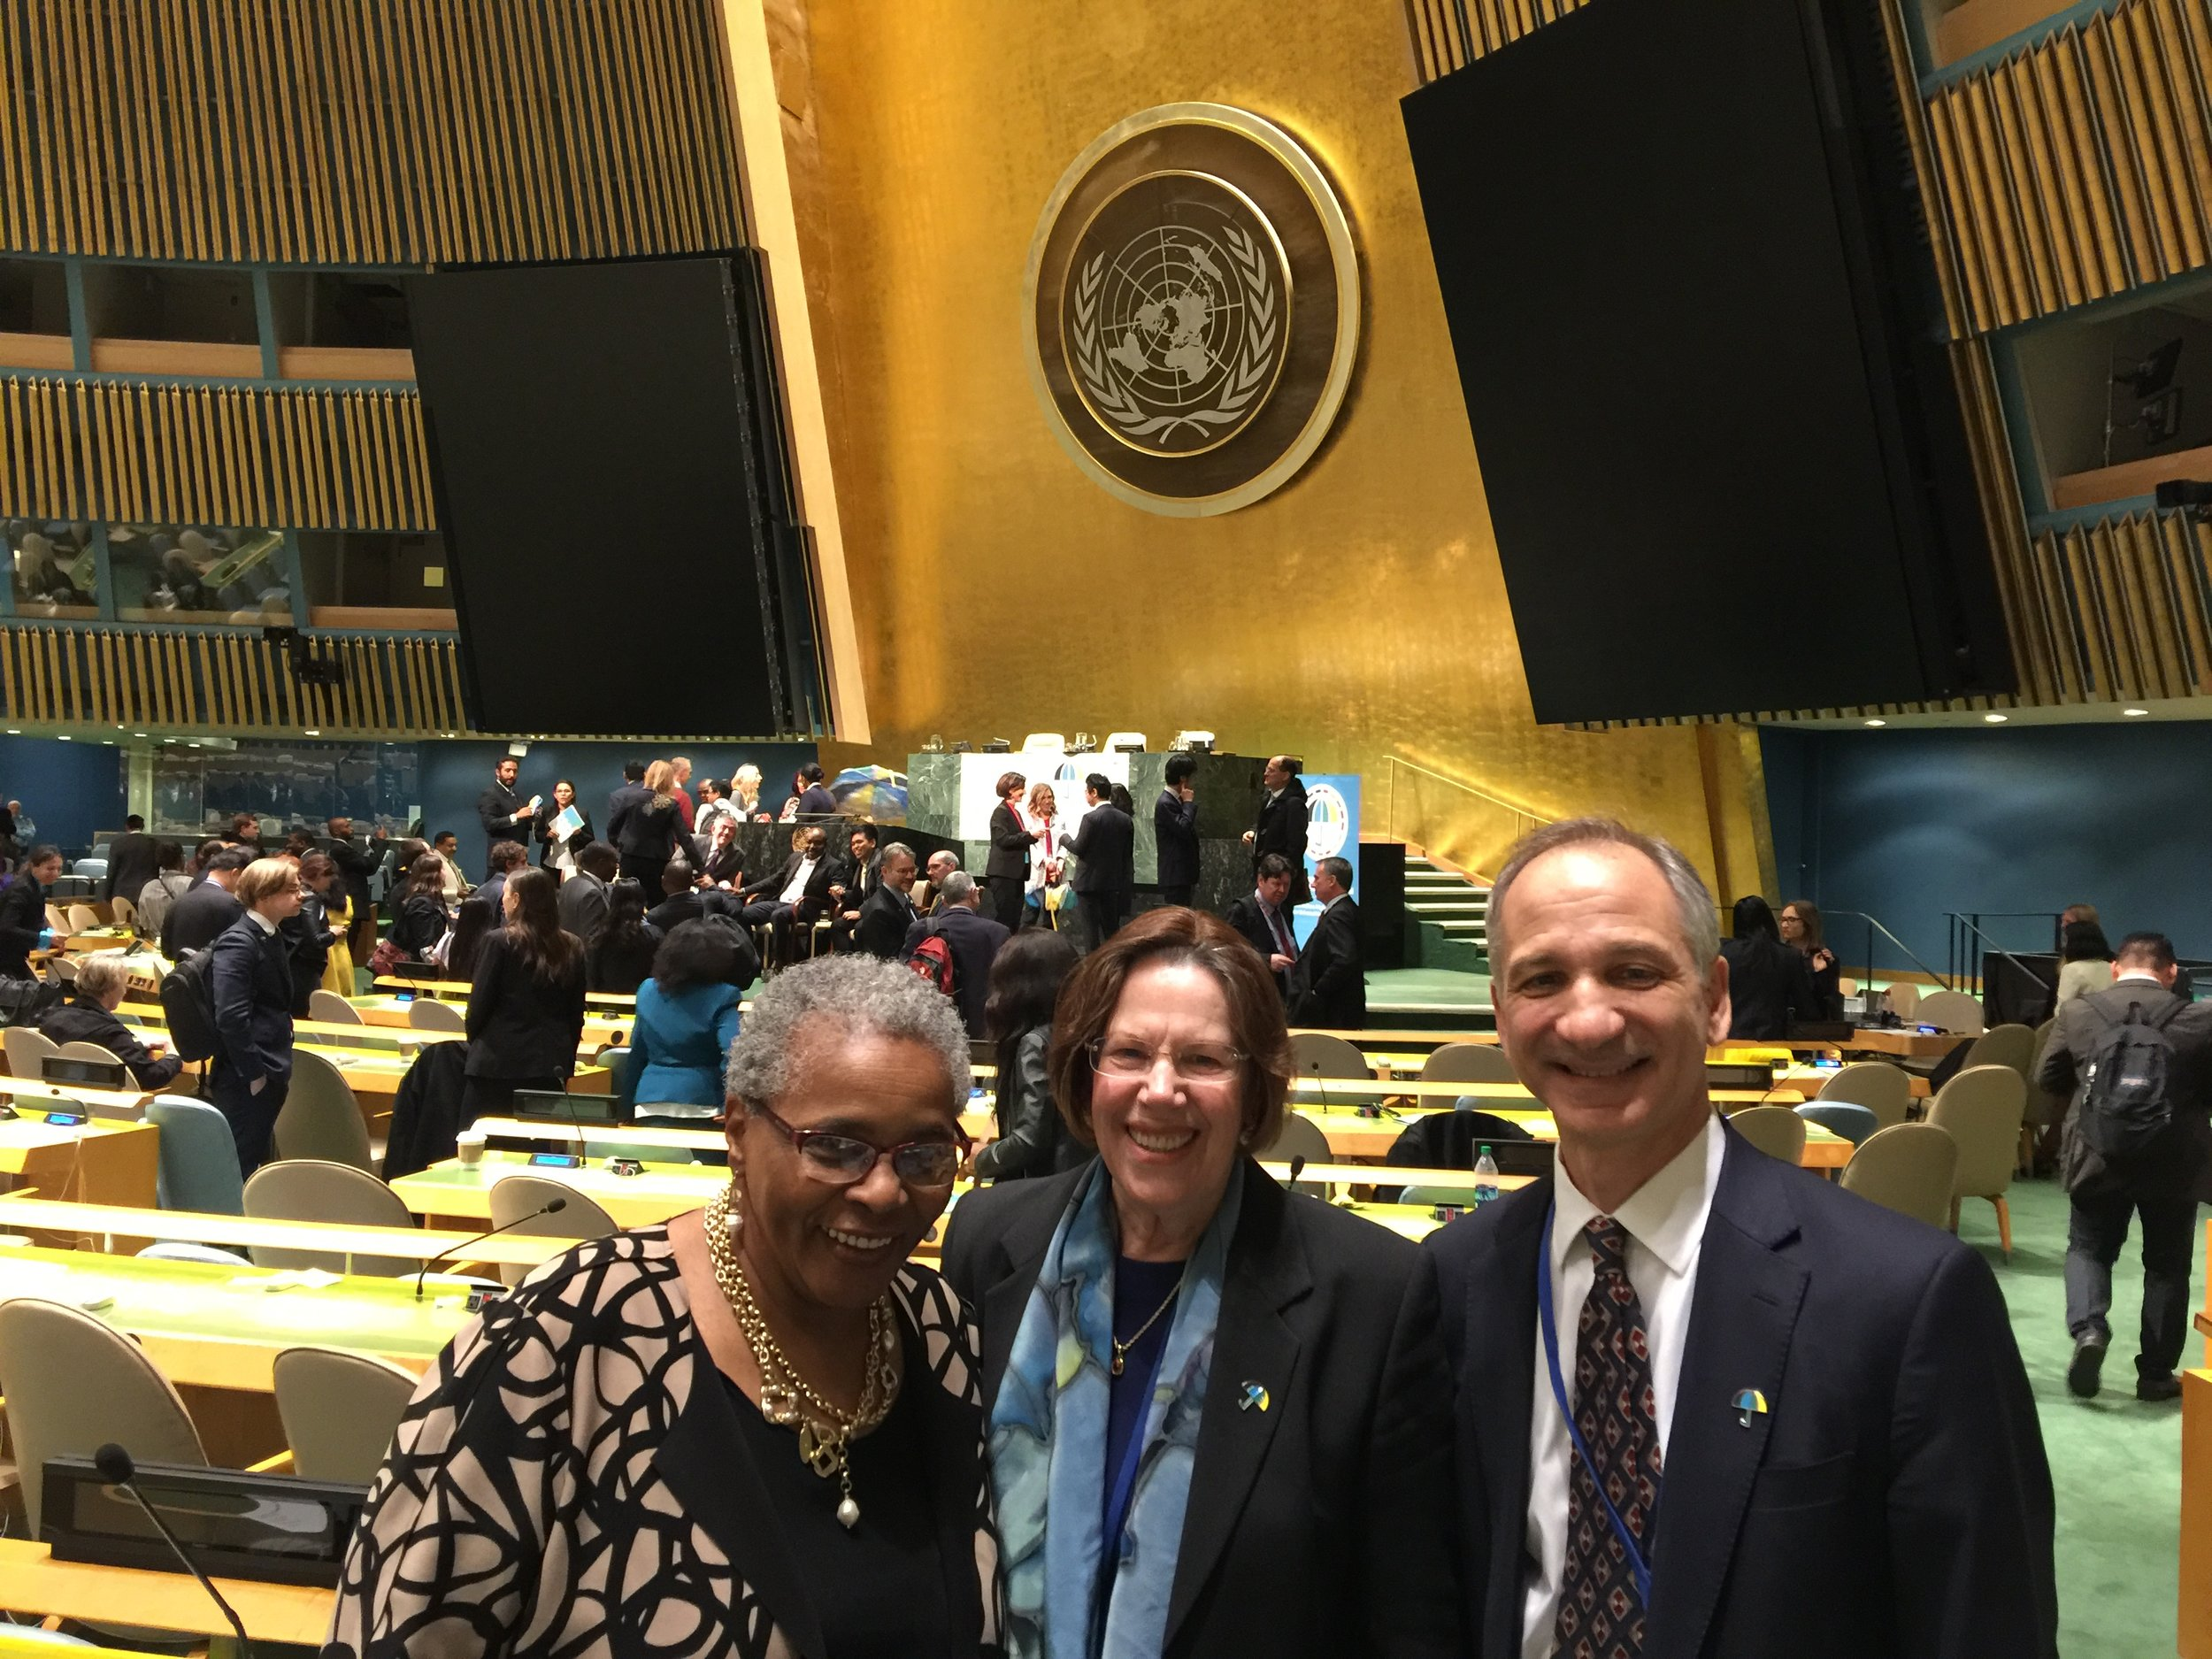 From left to right: Dr. Altha Stewart, President of the American Psychiatric Association, Dr.Vivian Pender, Chair, NGO CMH, Dr. Alexi Kalogerakis, UN Representative of the International Psychoanalytical Association